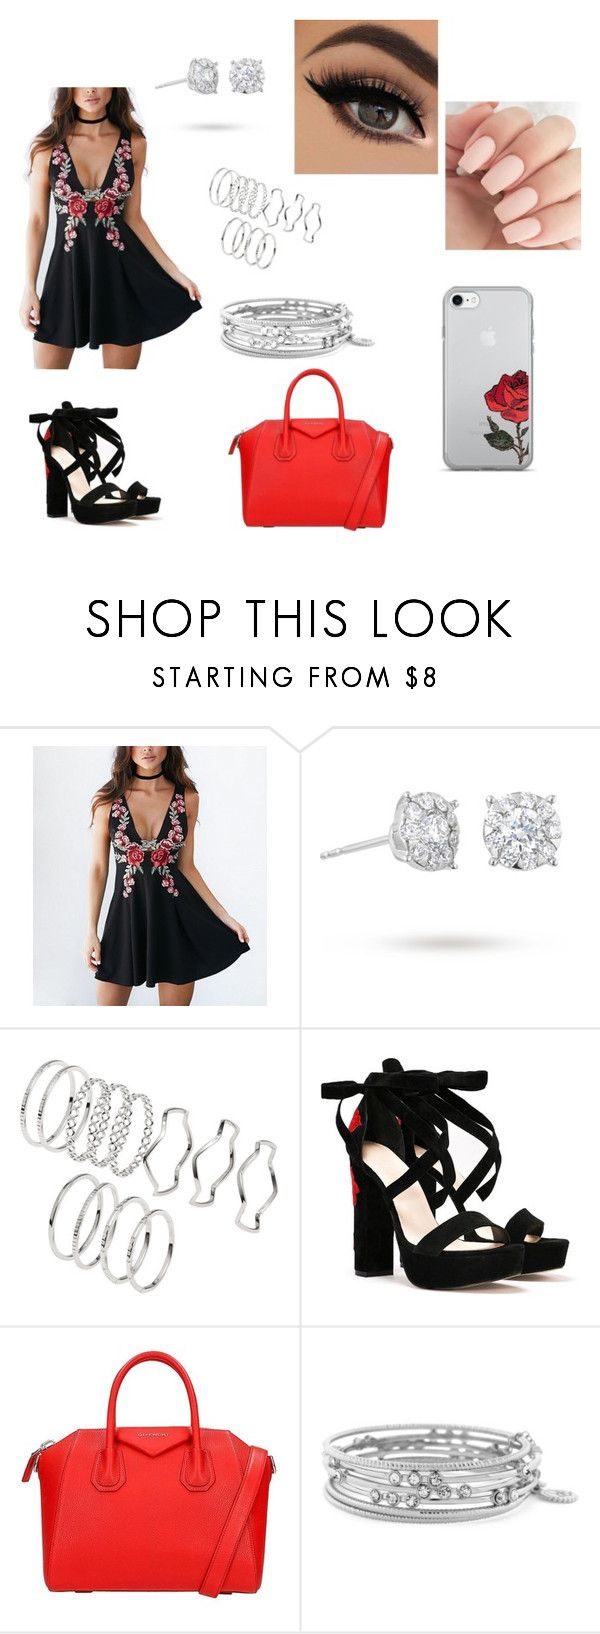 """Untitled #87"" by nin3li8 on Polyvore featuring Masquerade, Nasty Gal, Givenchy and Jessica Simpson"